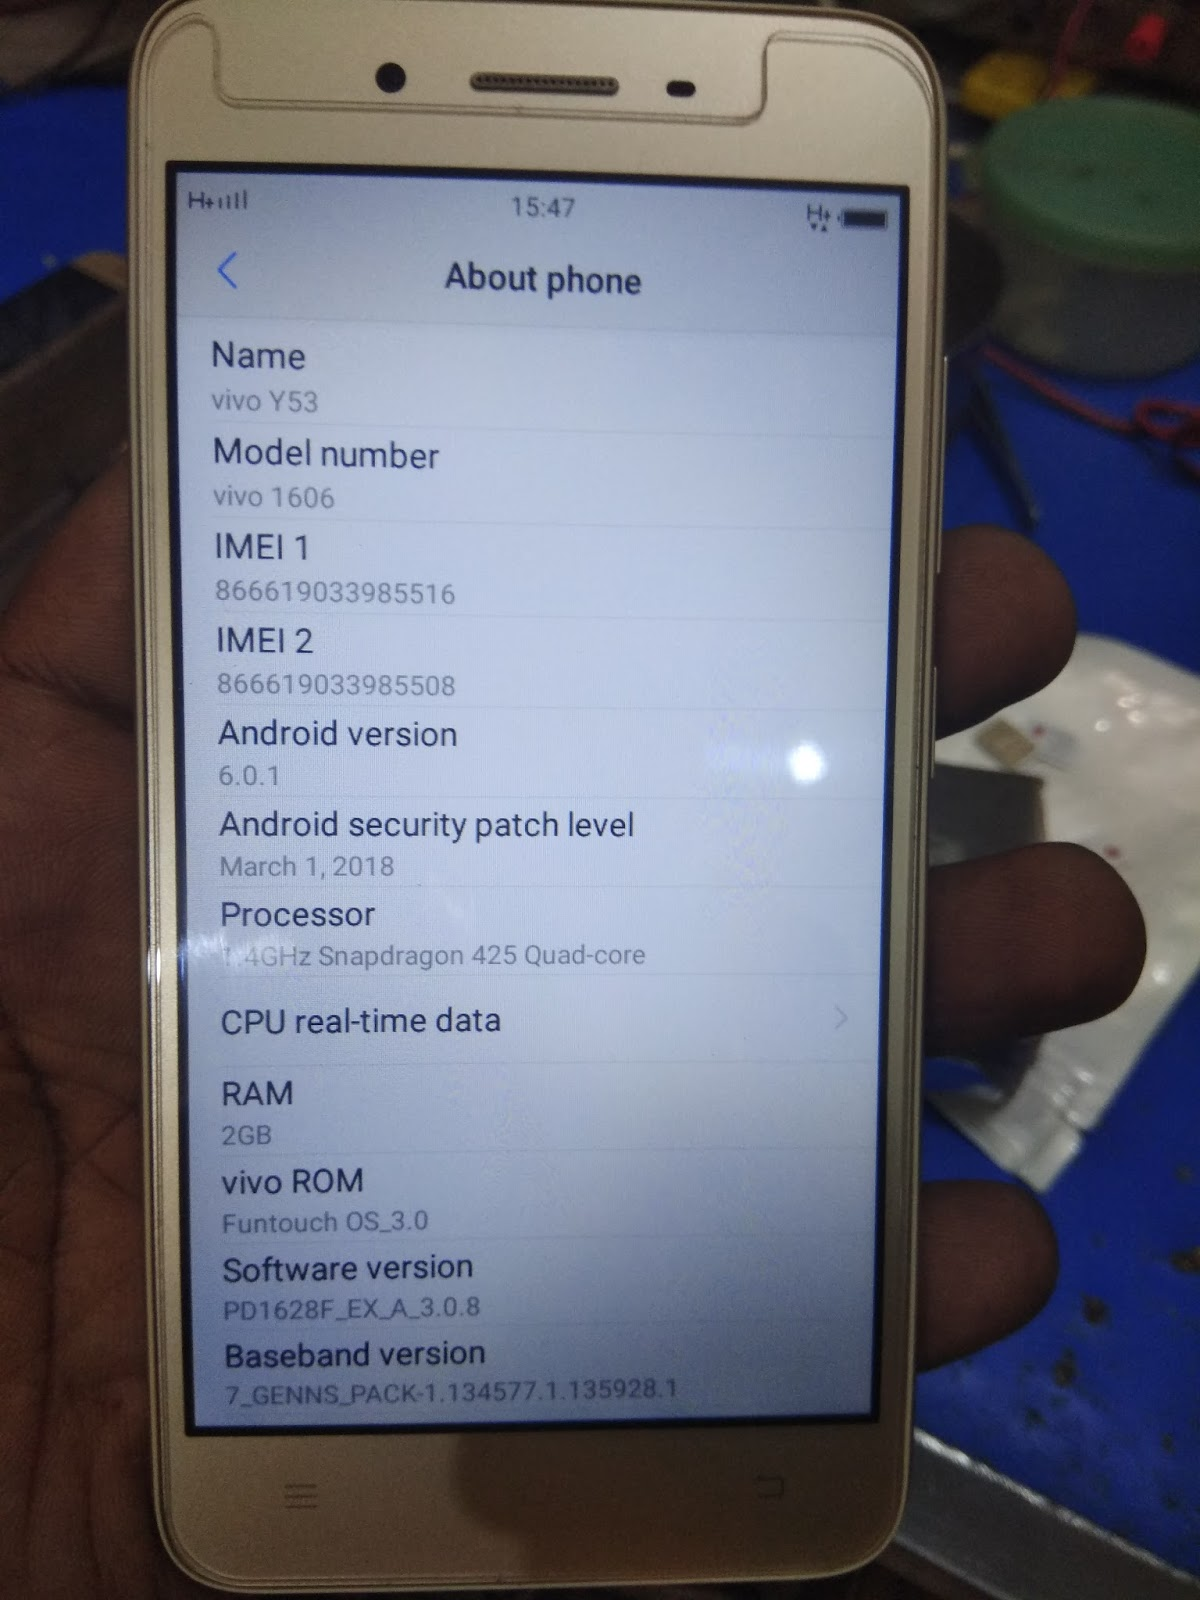 VIVO 1606 FIRMWARE FLASH FILE QUALCOMM 100% TESTED | ABC